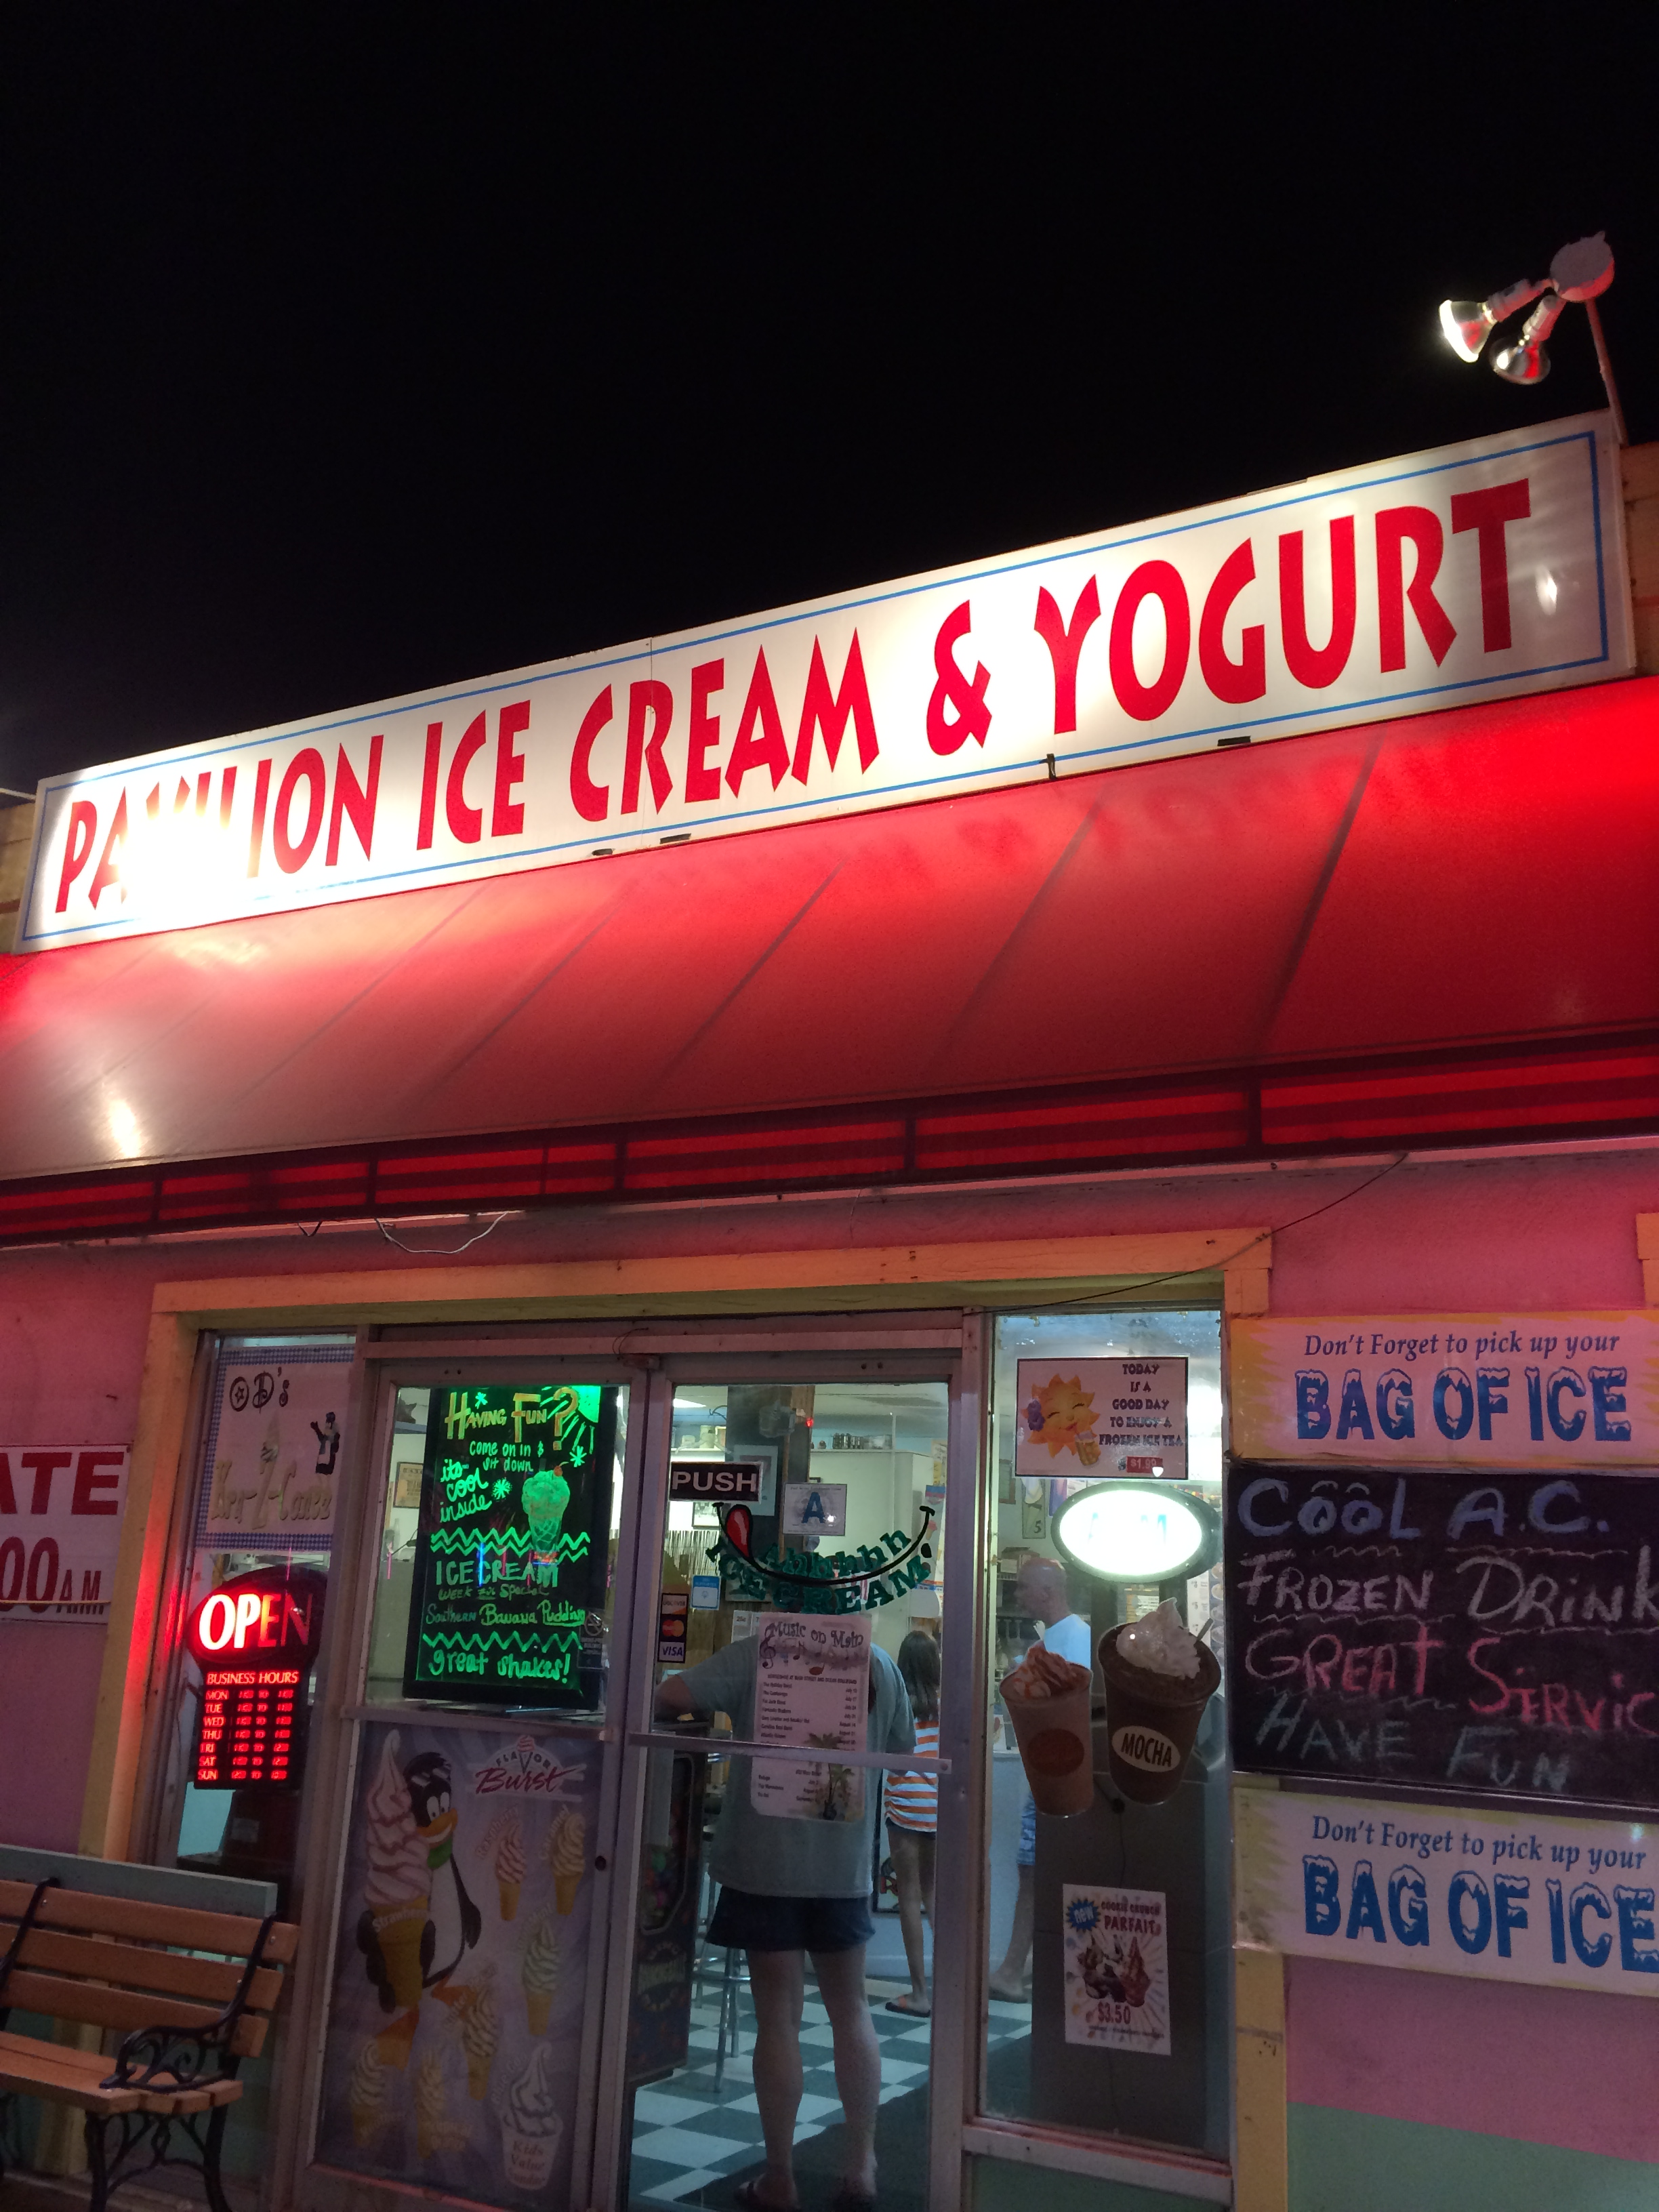 This is O.D. Pavilion Ice Cream in North Myrtle Beach.